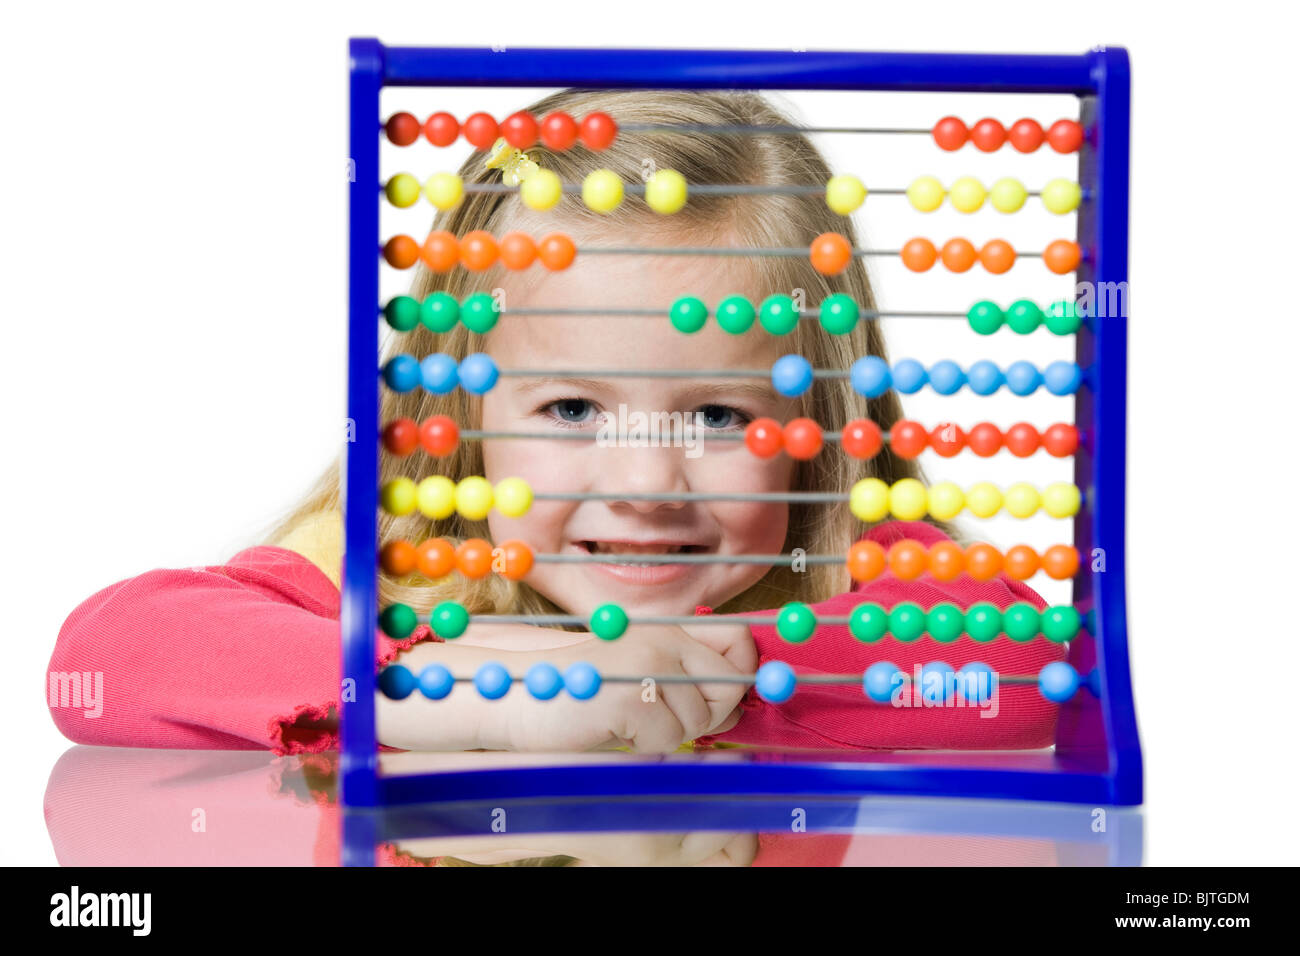 Close-up of child with counting beads - Stock Image